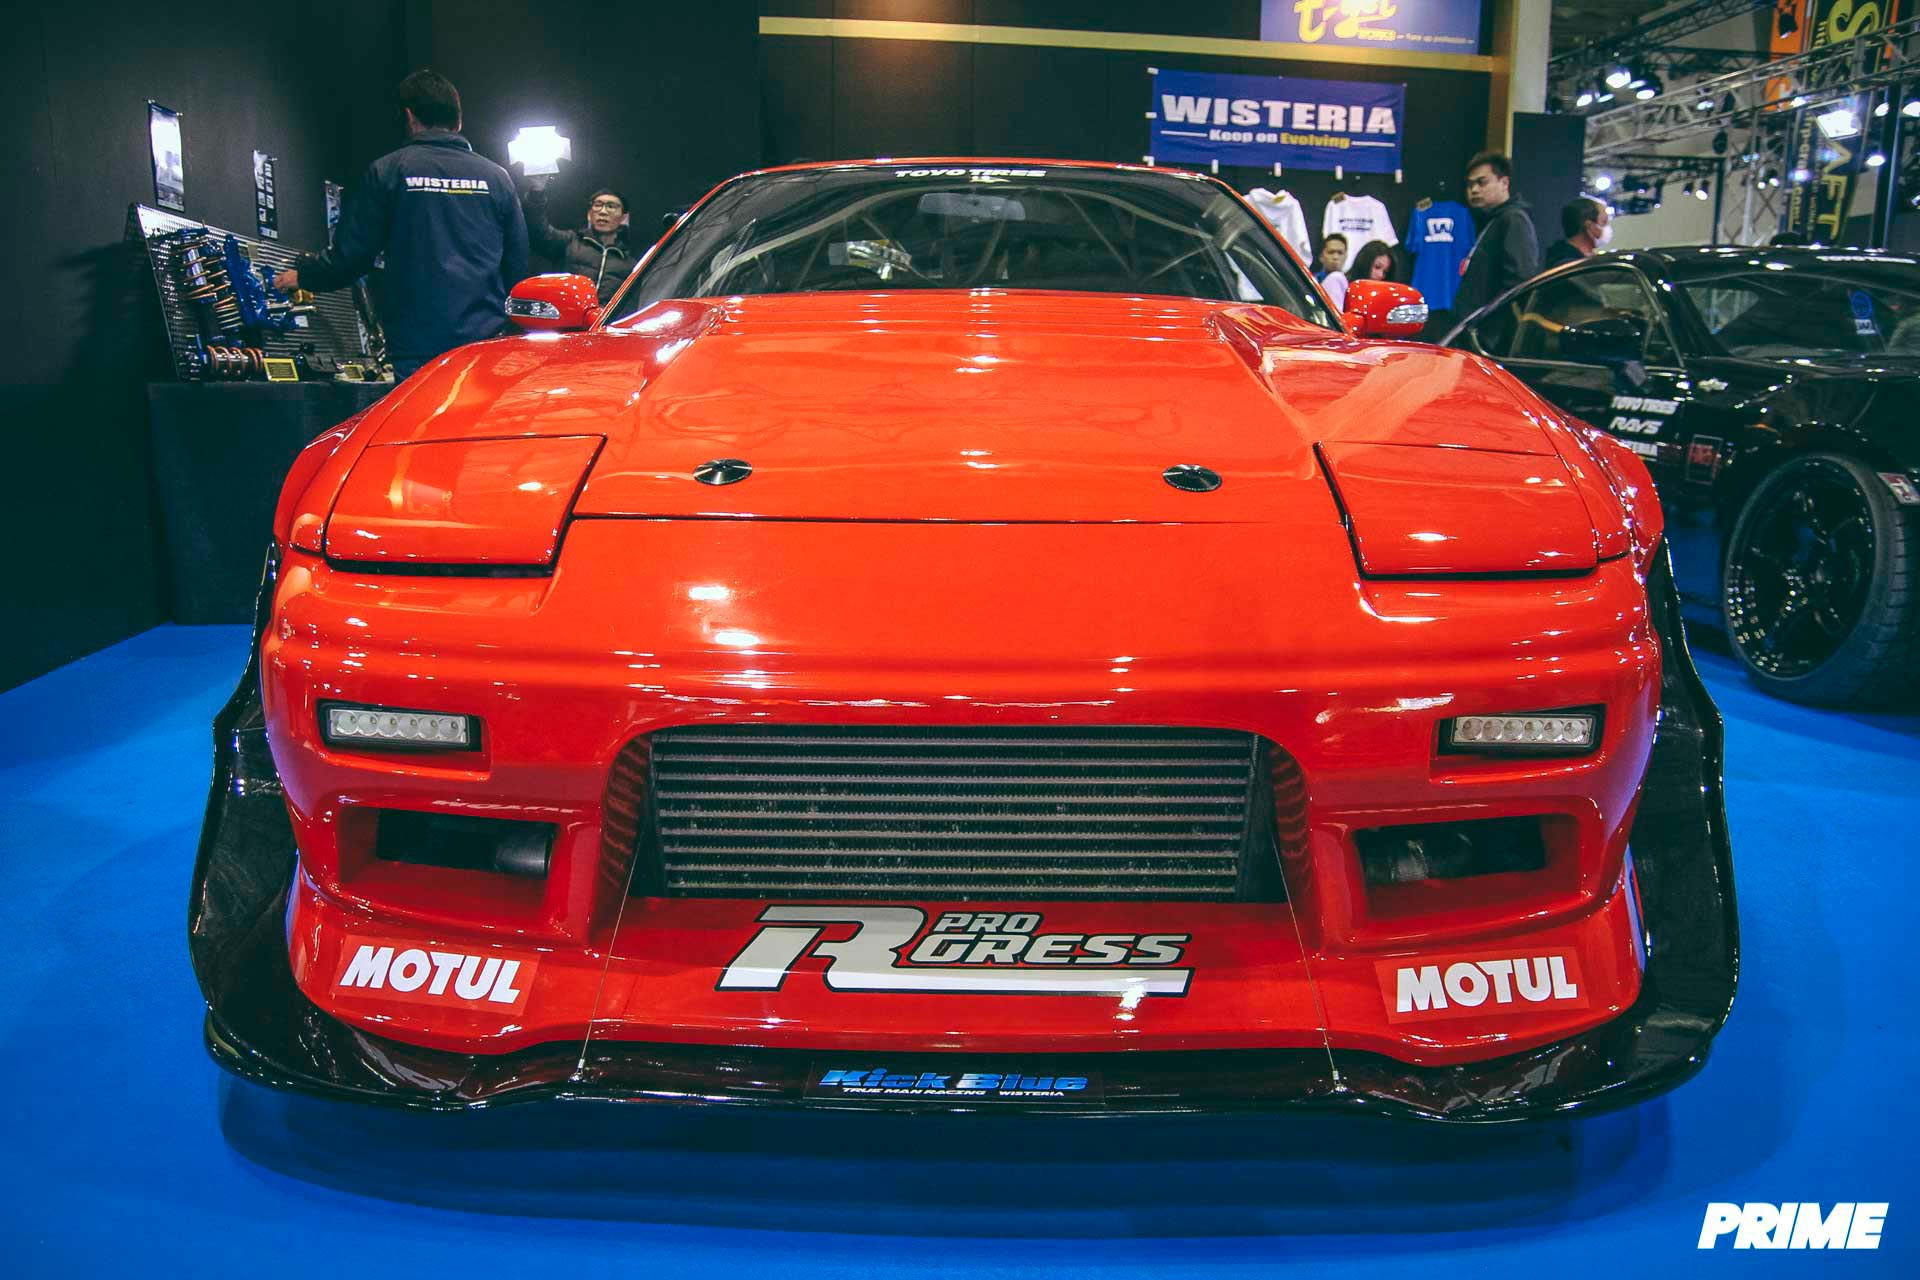 TOKYO AUTO SALON: REALITY  WHAT ARE YOU HERE TO SEE? – PRIME